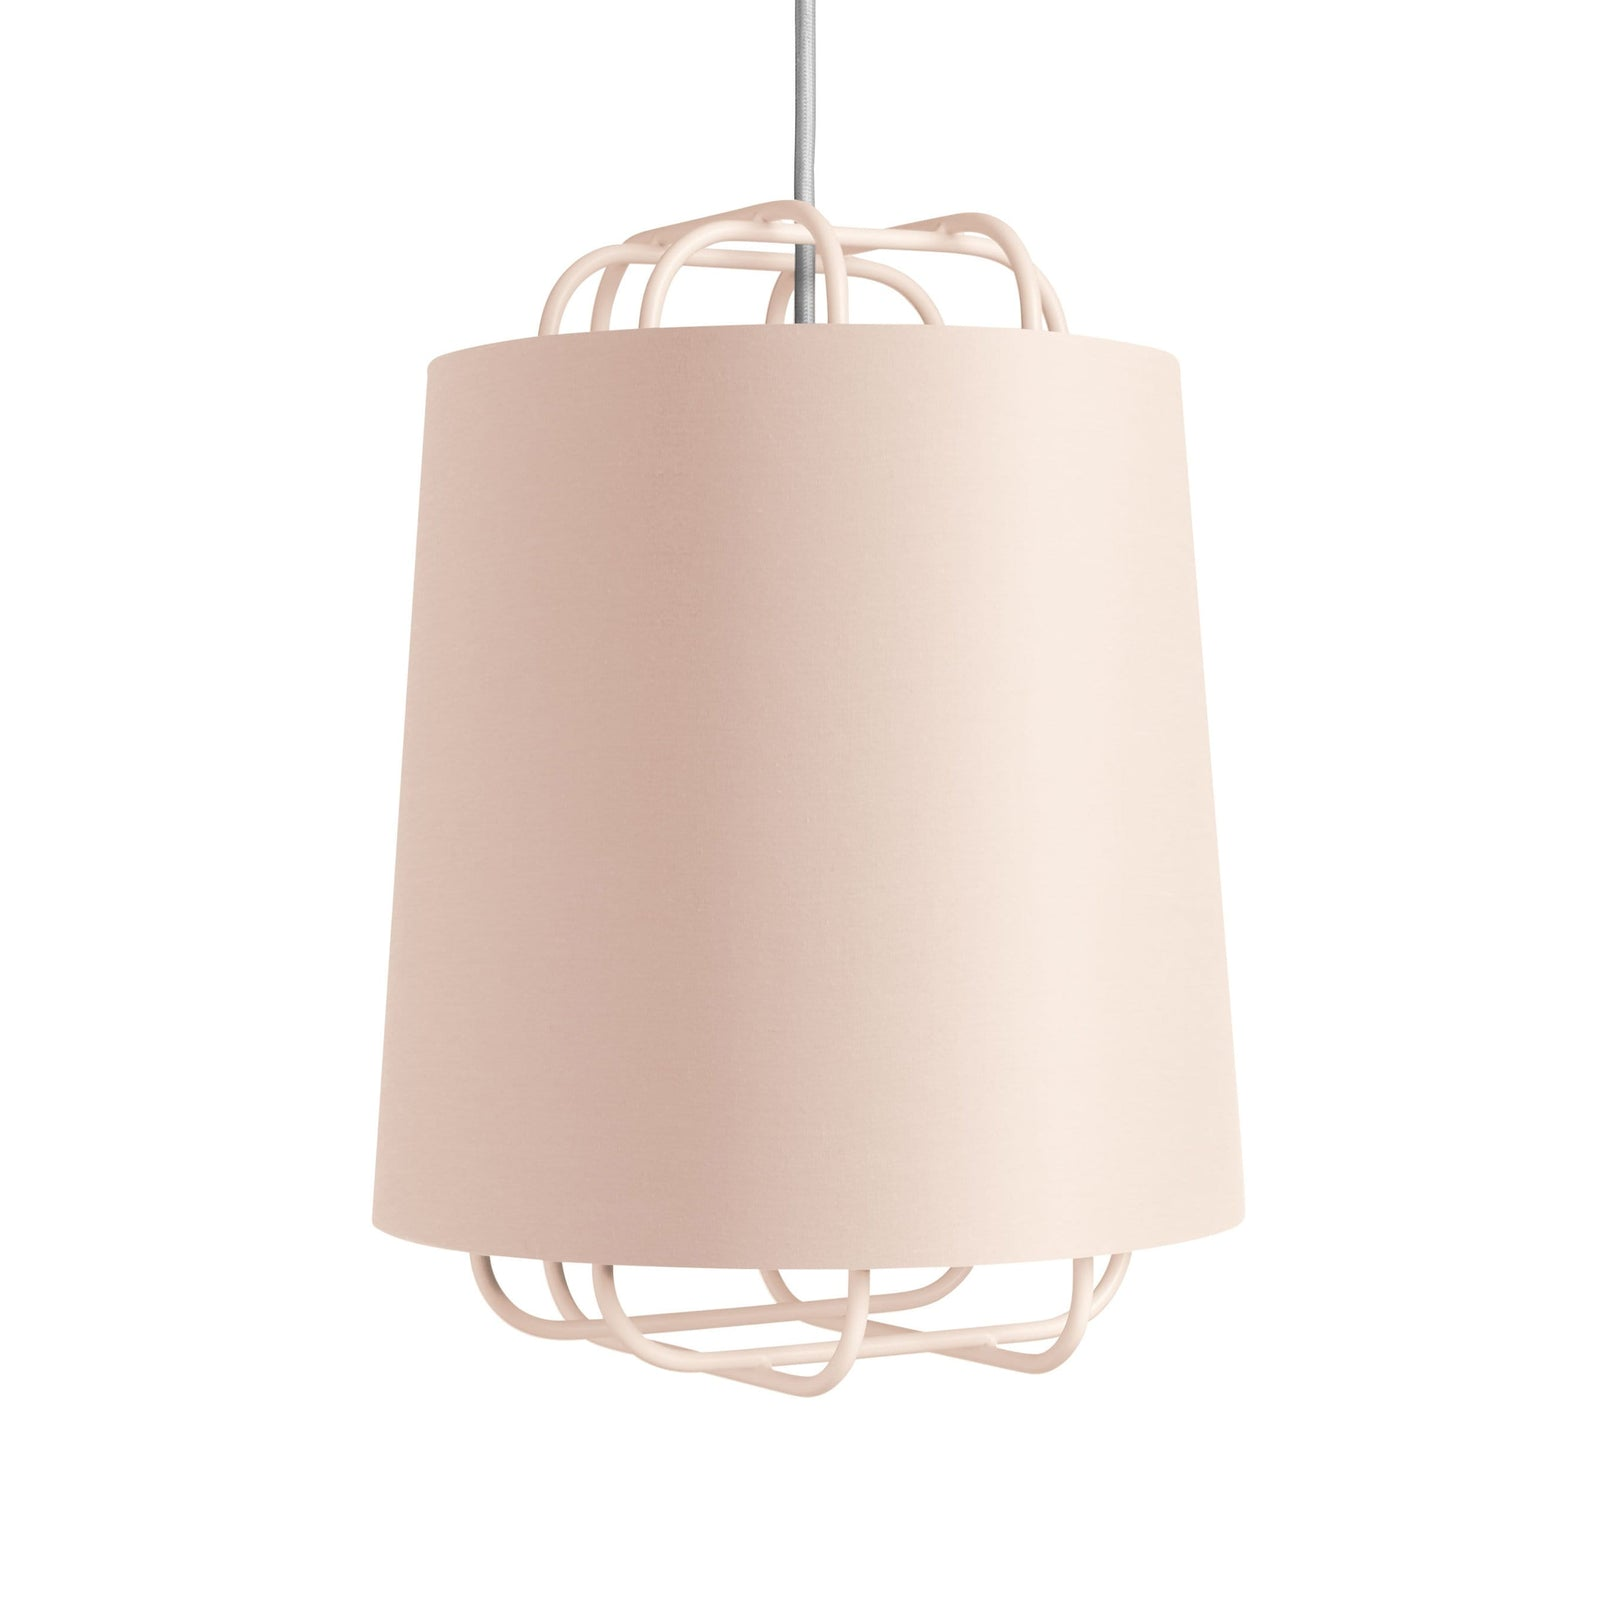 Blu Dot Lighting Blush Perimeter Small Pendant Light